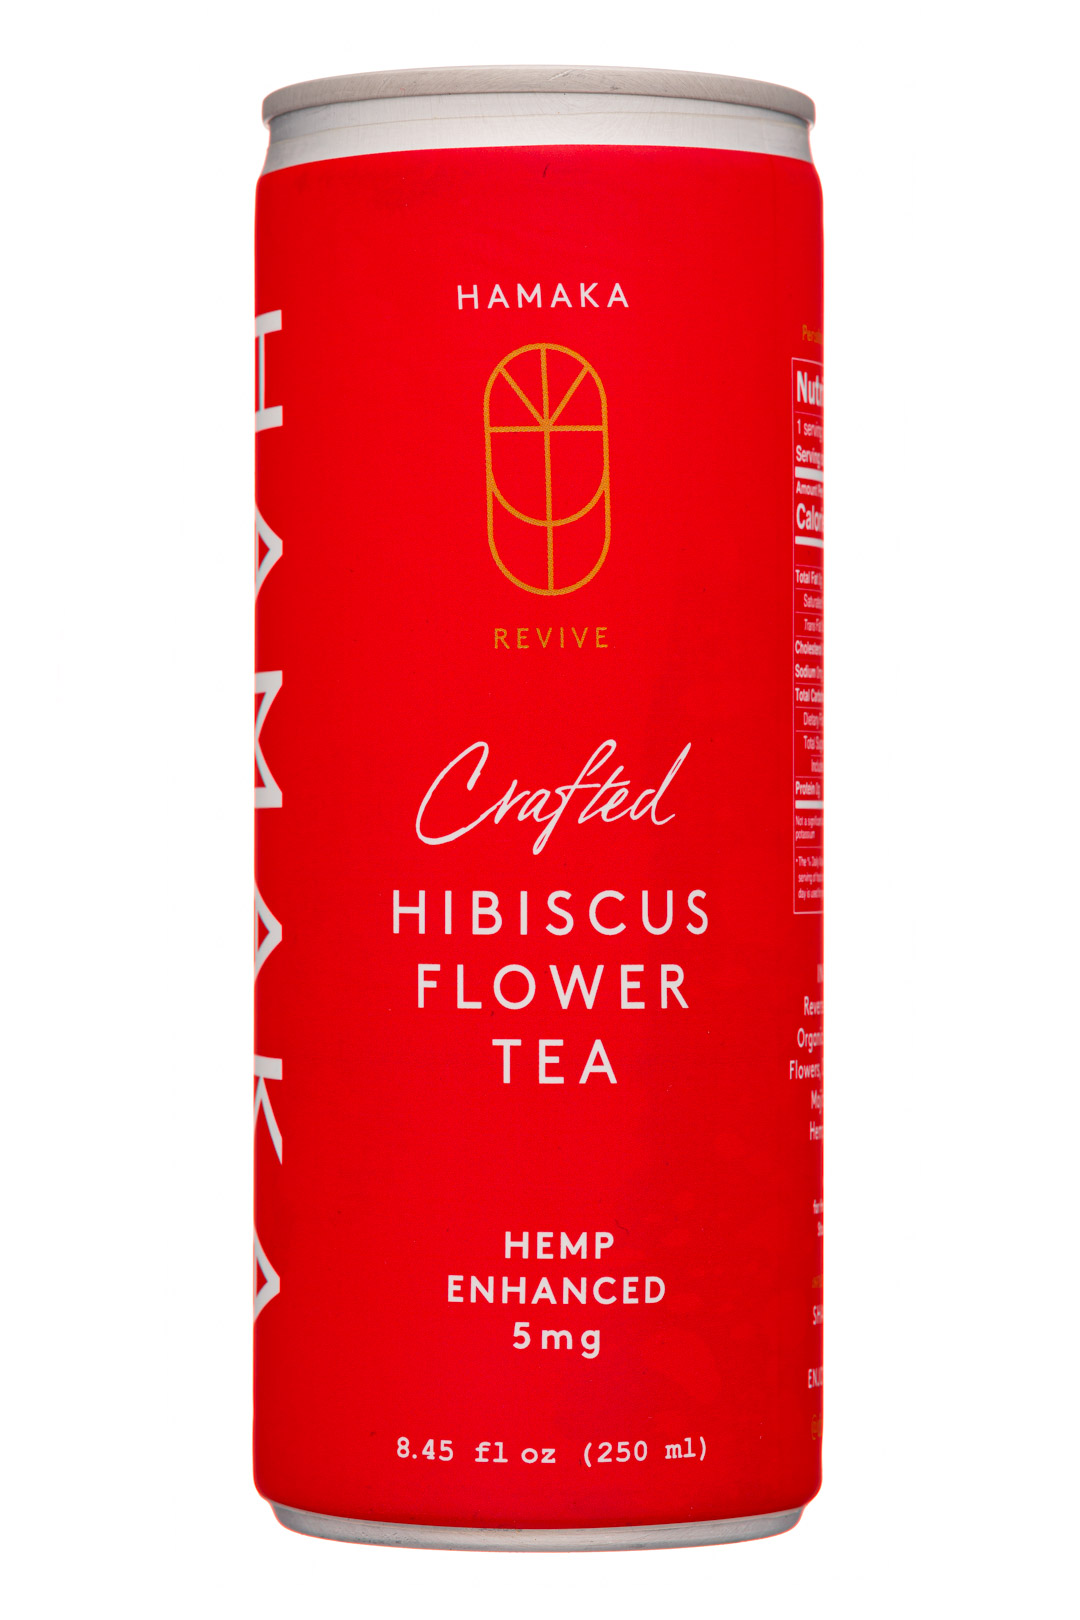 Hemp Enhanced Hibiscus Flower Tea